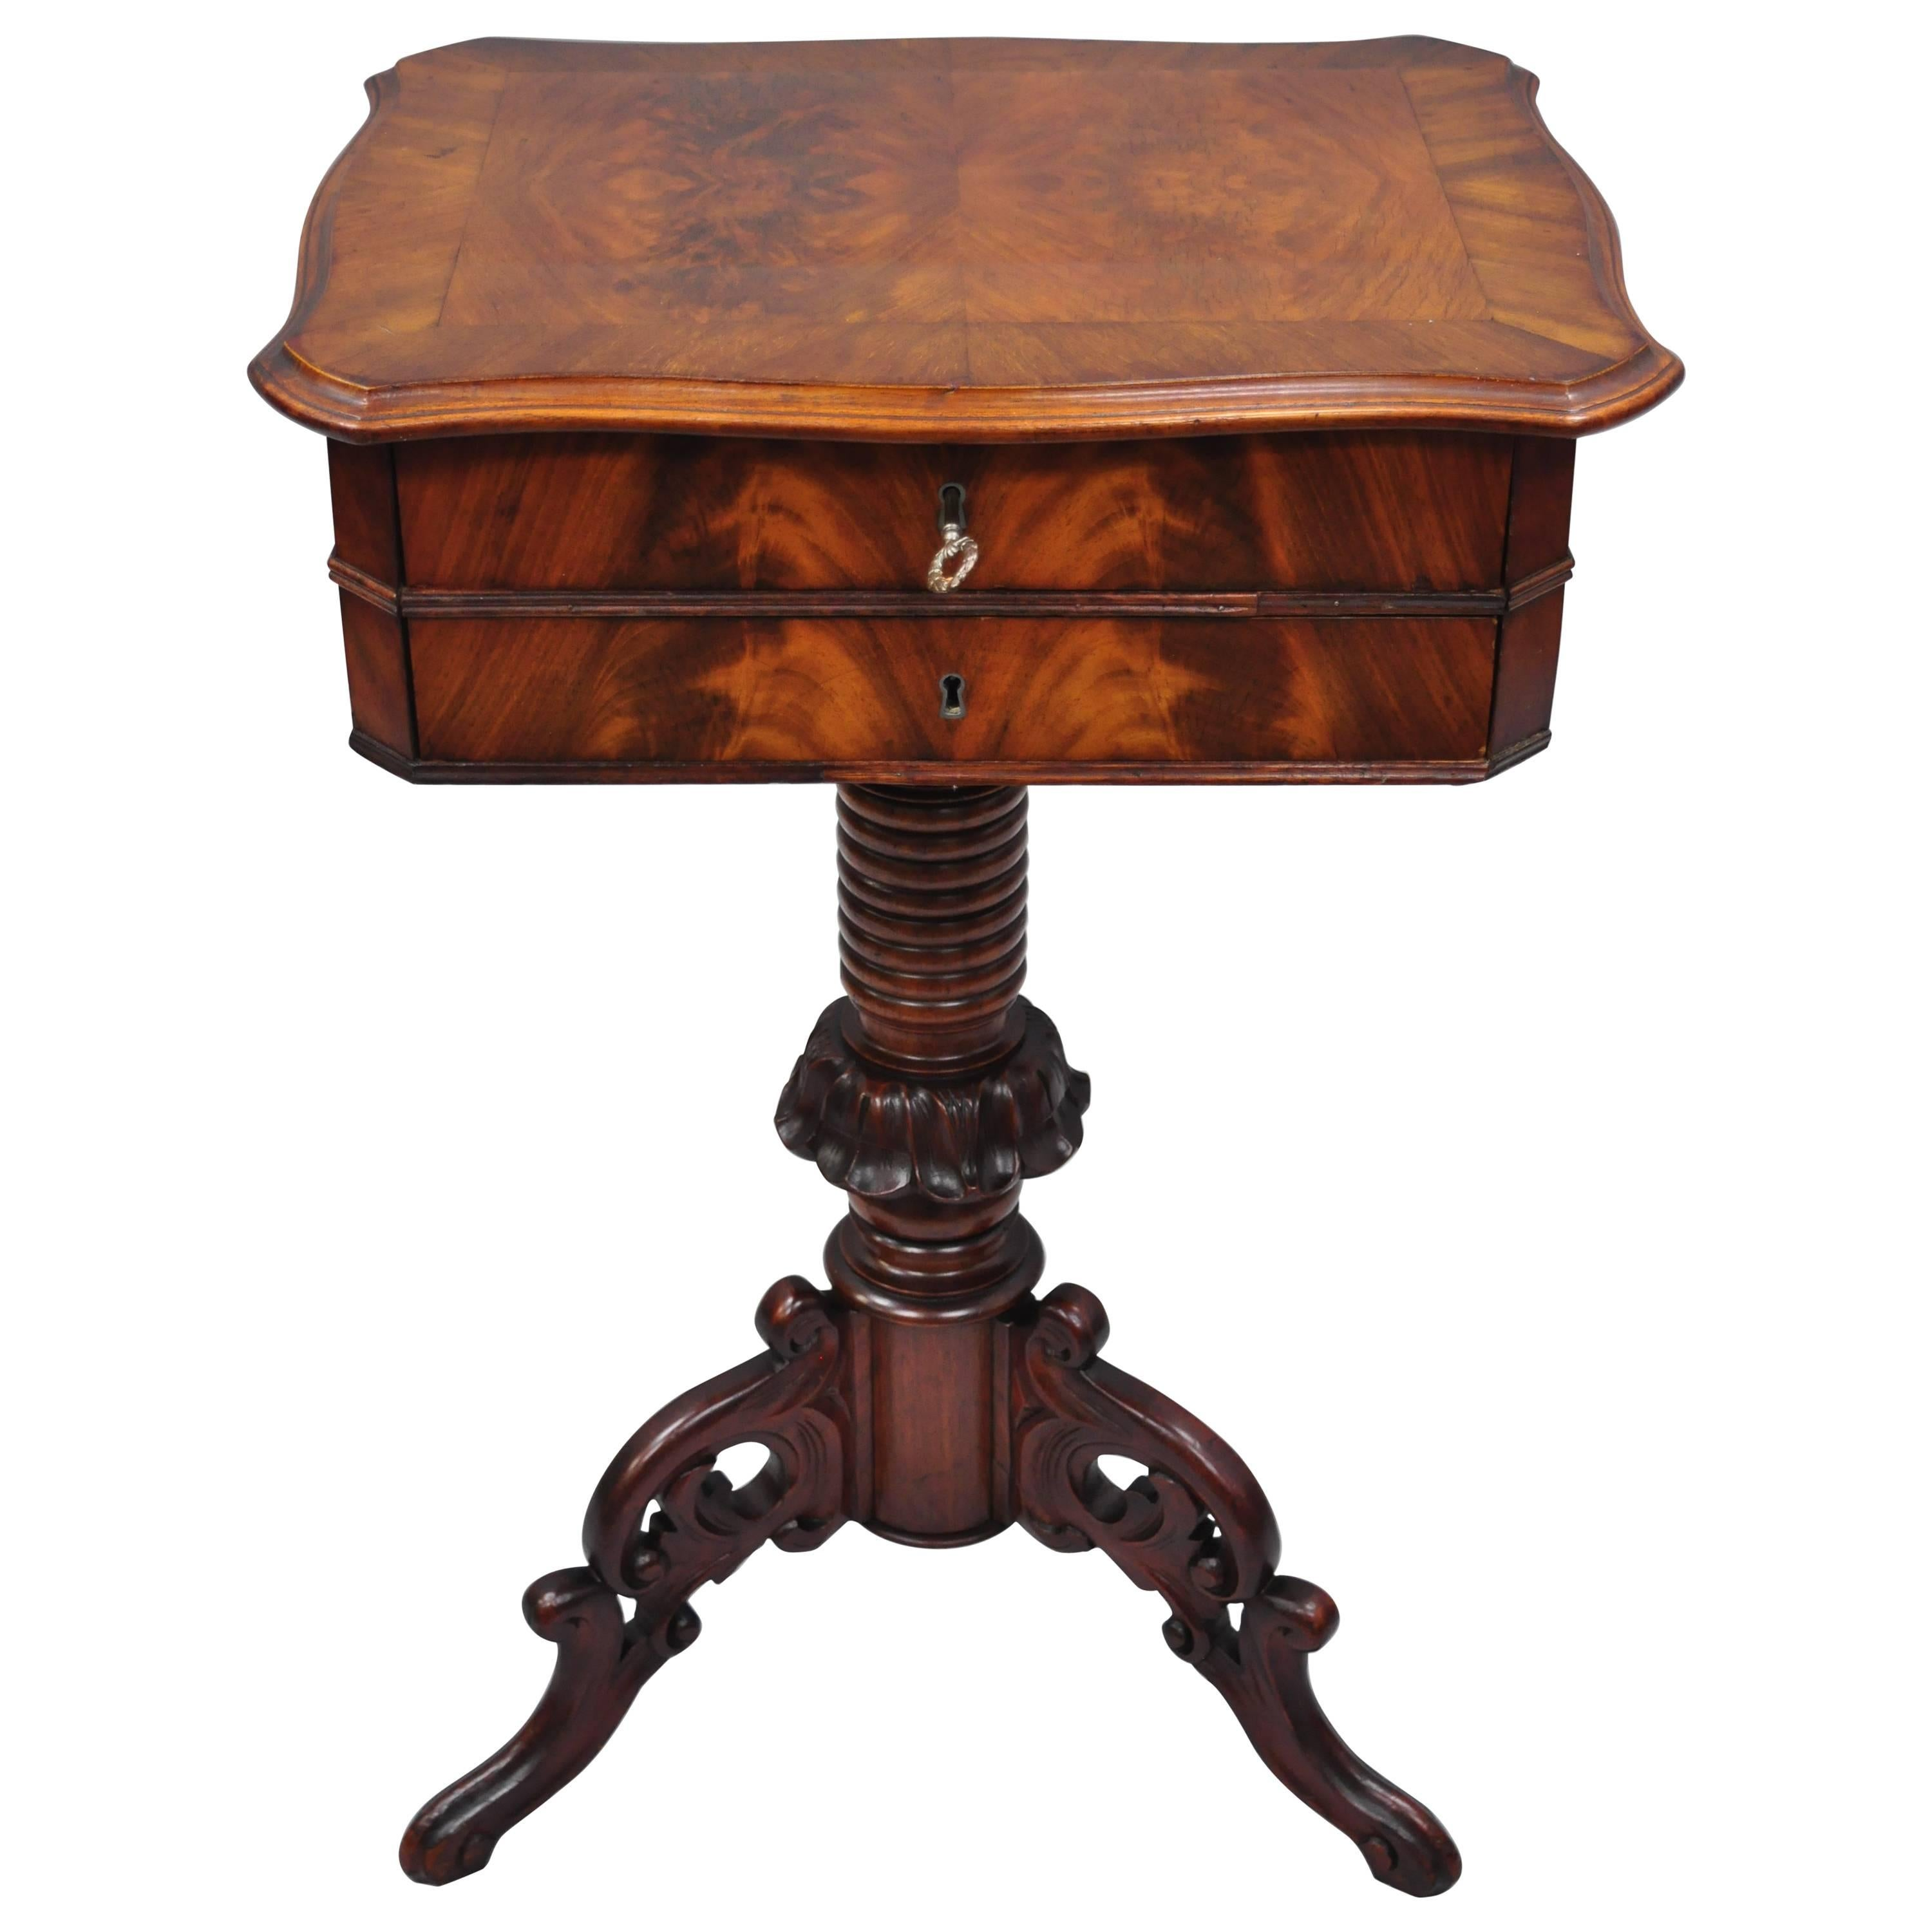 Tables Lovely Antique Style Victorian Mahogany Tilt Top Pedestal Occasional Side Table